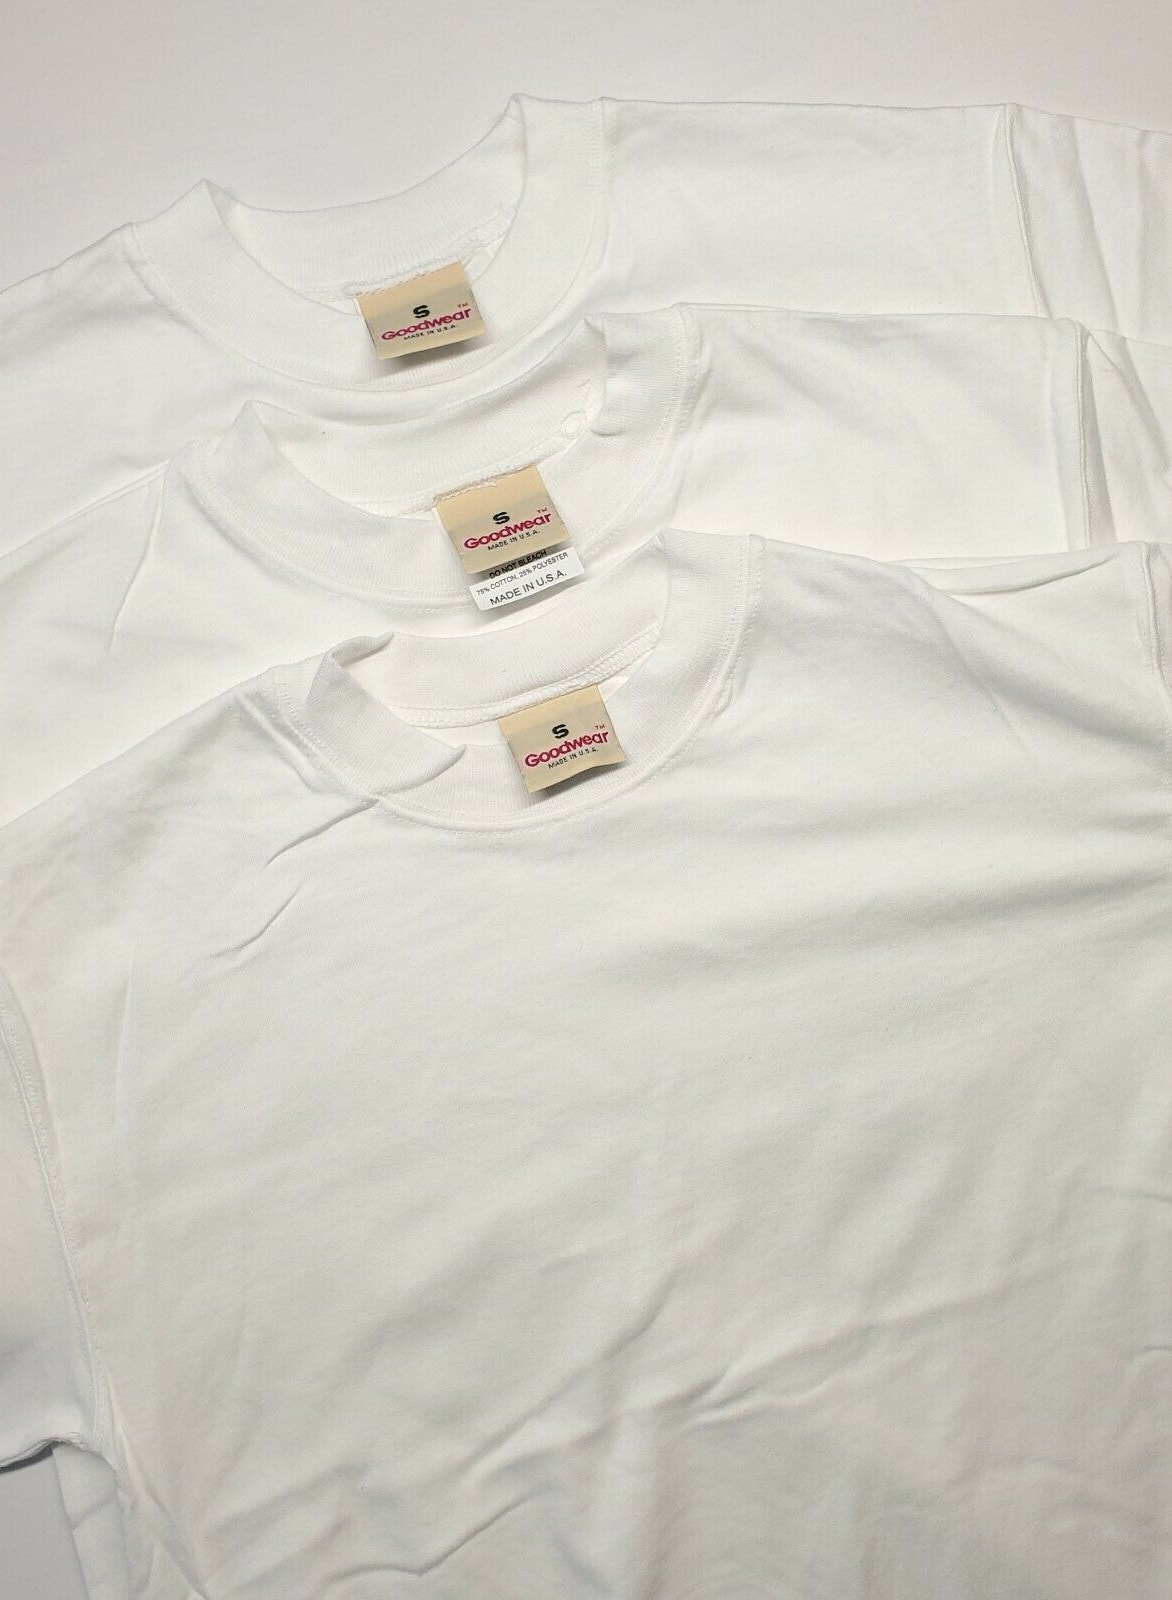 Vintage 90s Deadstock NOS Blank T Shirt Lot Of 3 Sz Small White USA Goodwear